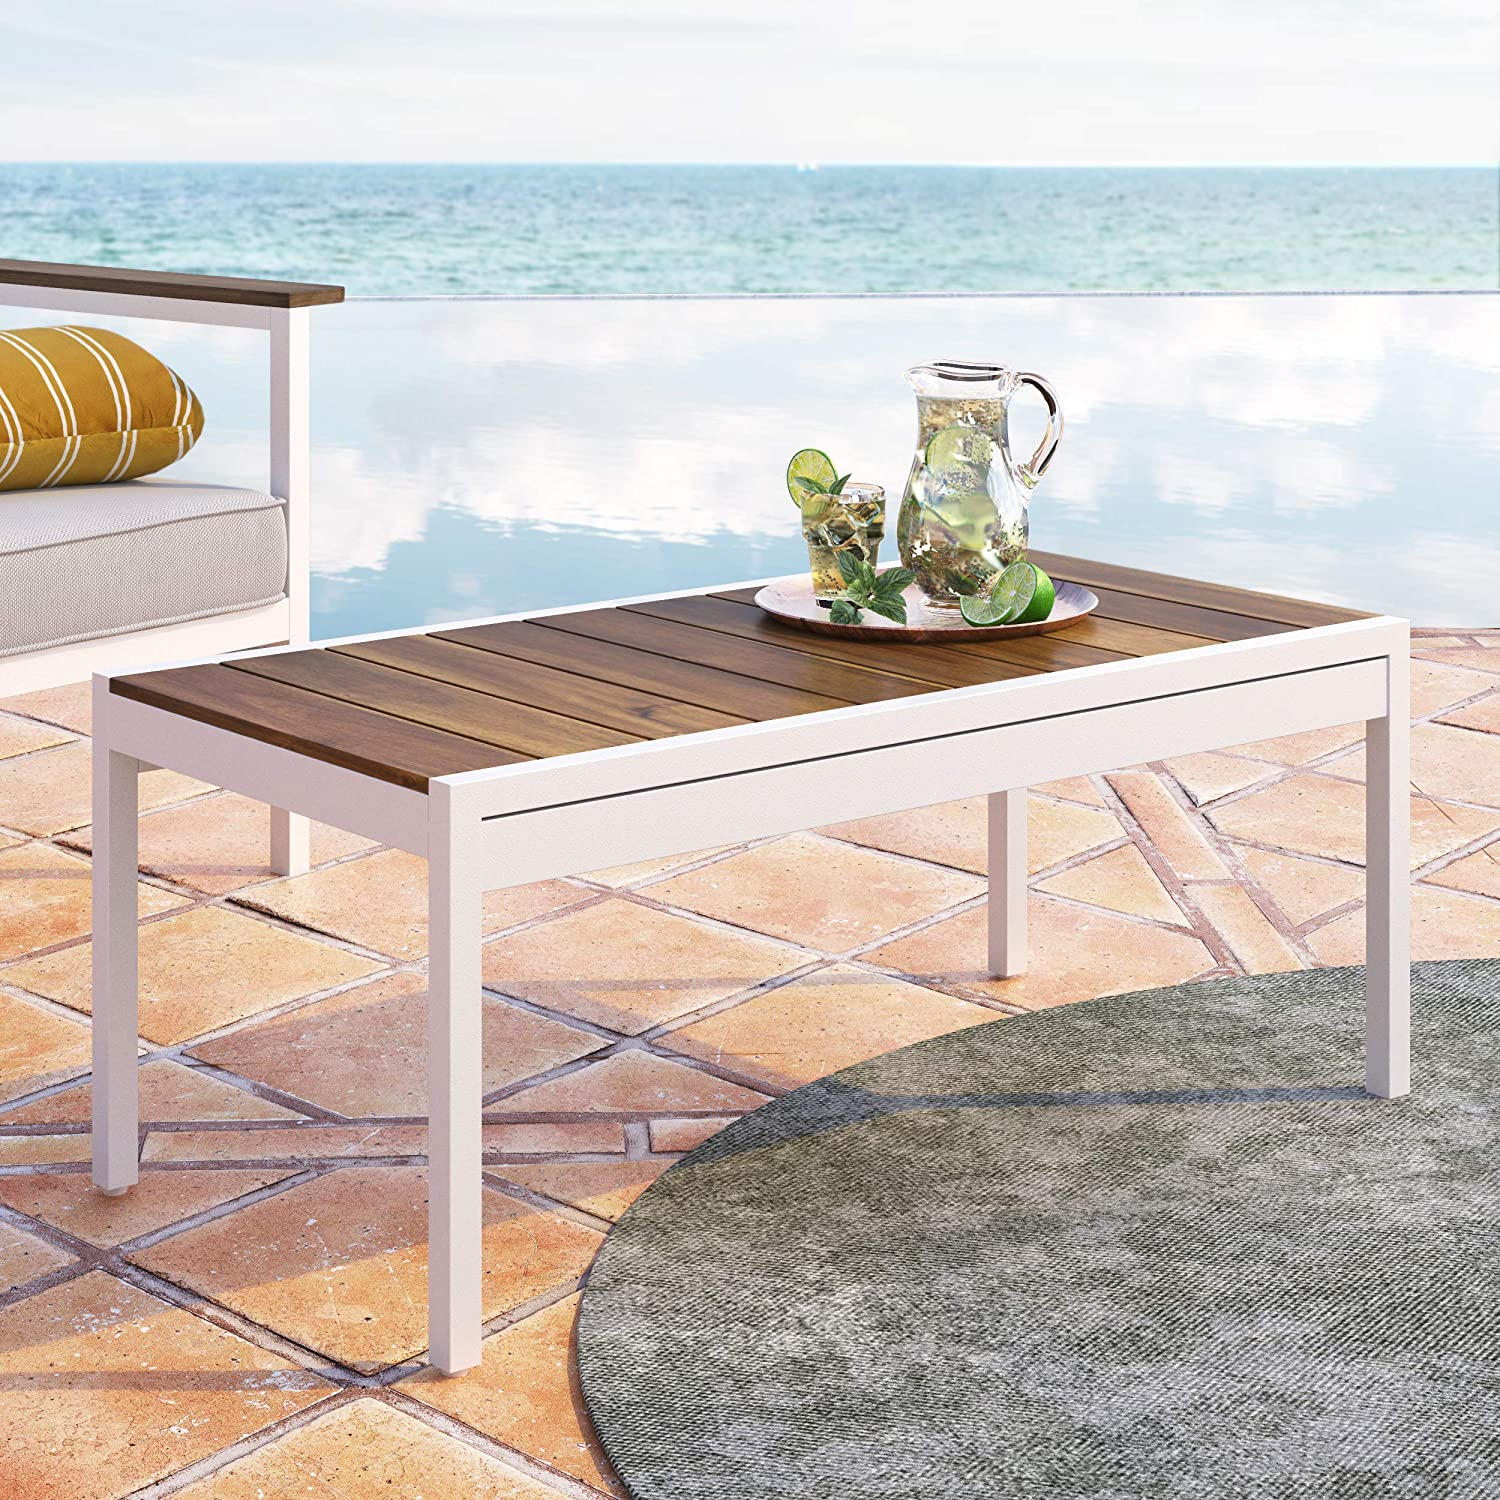 ZINUS Pablo 39 Inch Aluminum and Acacia Wood Outdoor Table with Waterproof Cover / Weather Resistant and Rust Proof / Quick and Easy Assembly